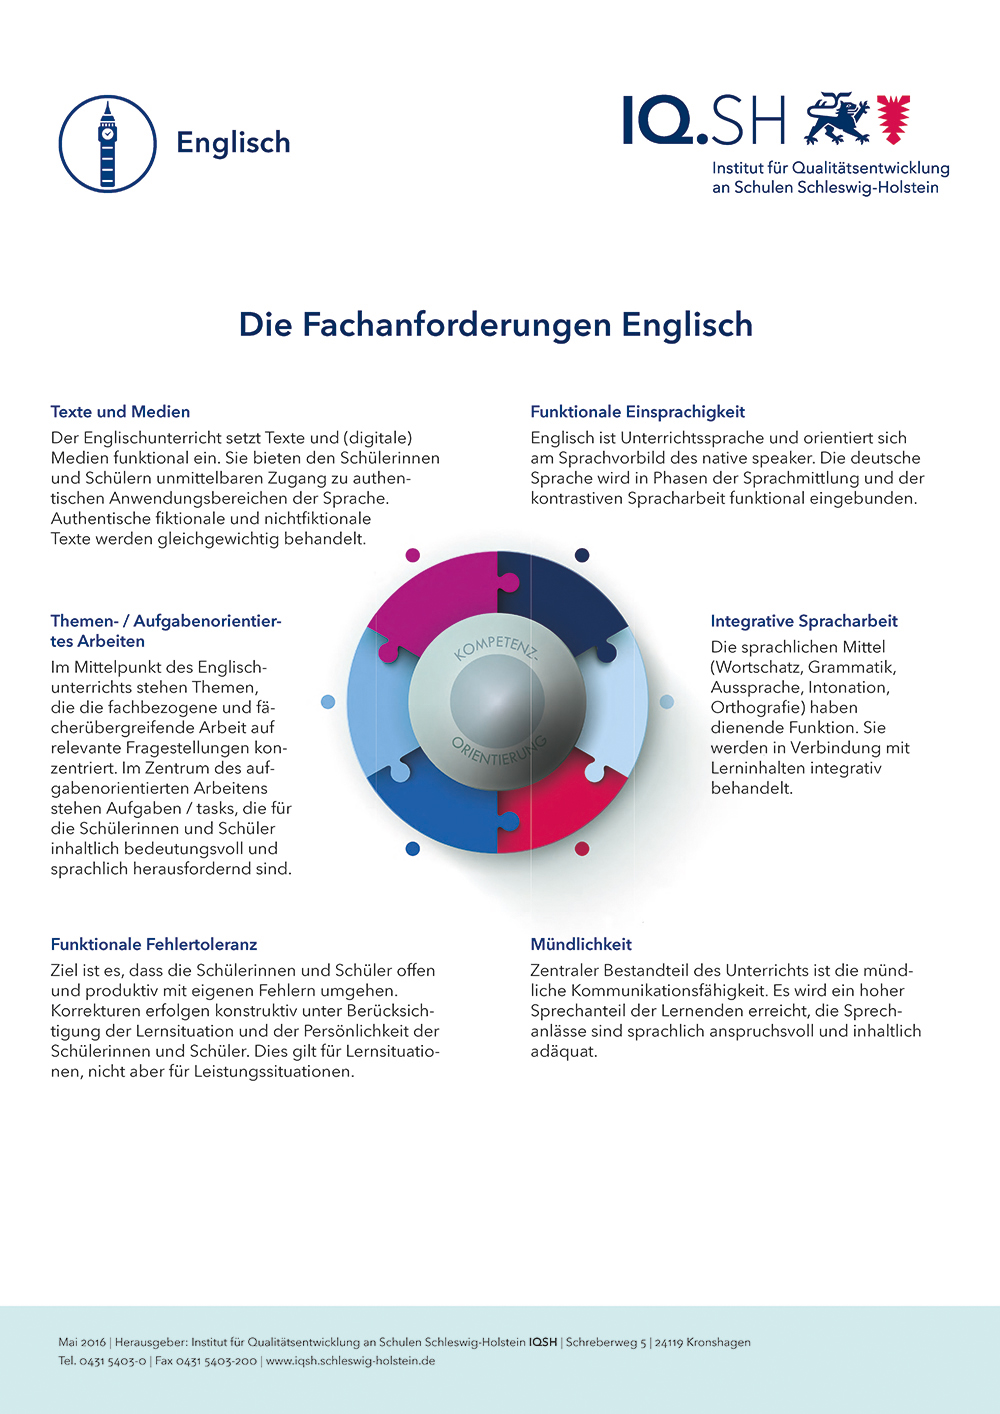 Englisch.jpg?auto=compress,format&colorquant=1600